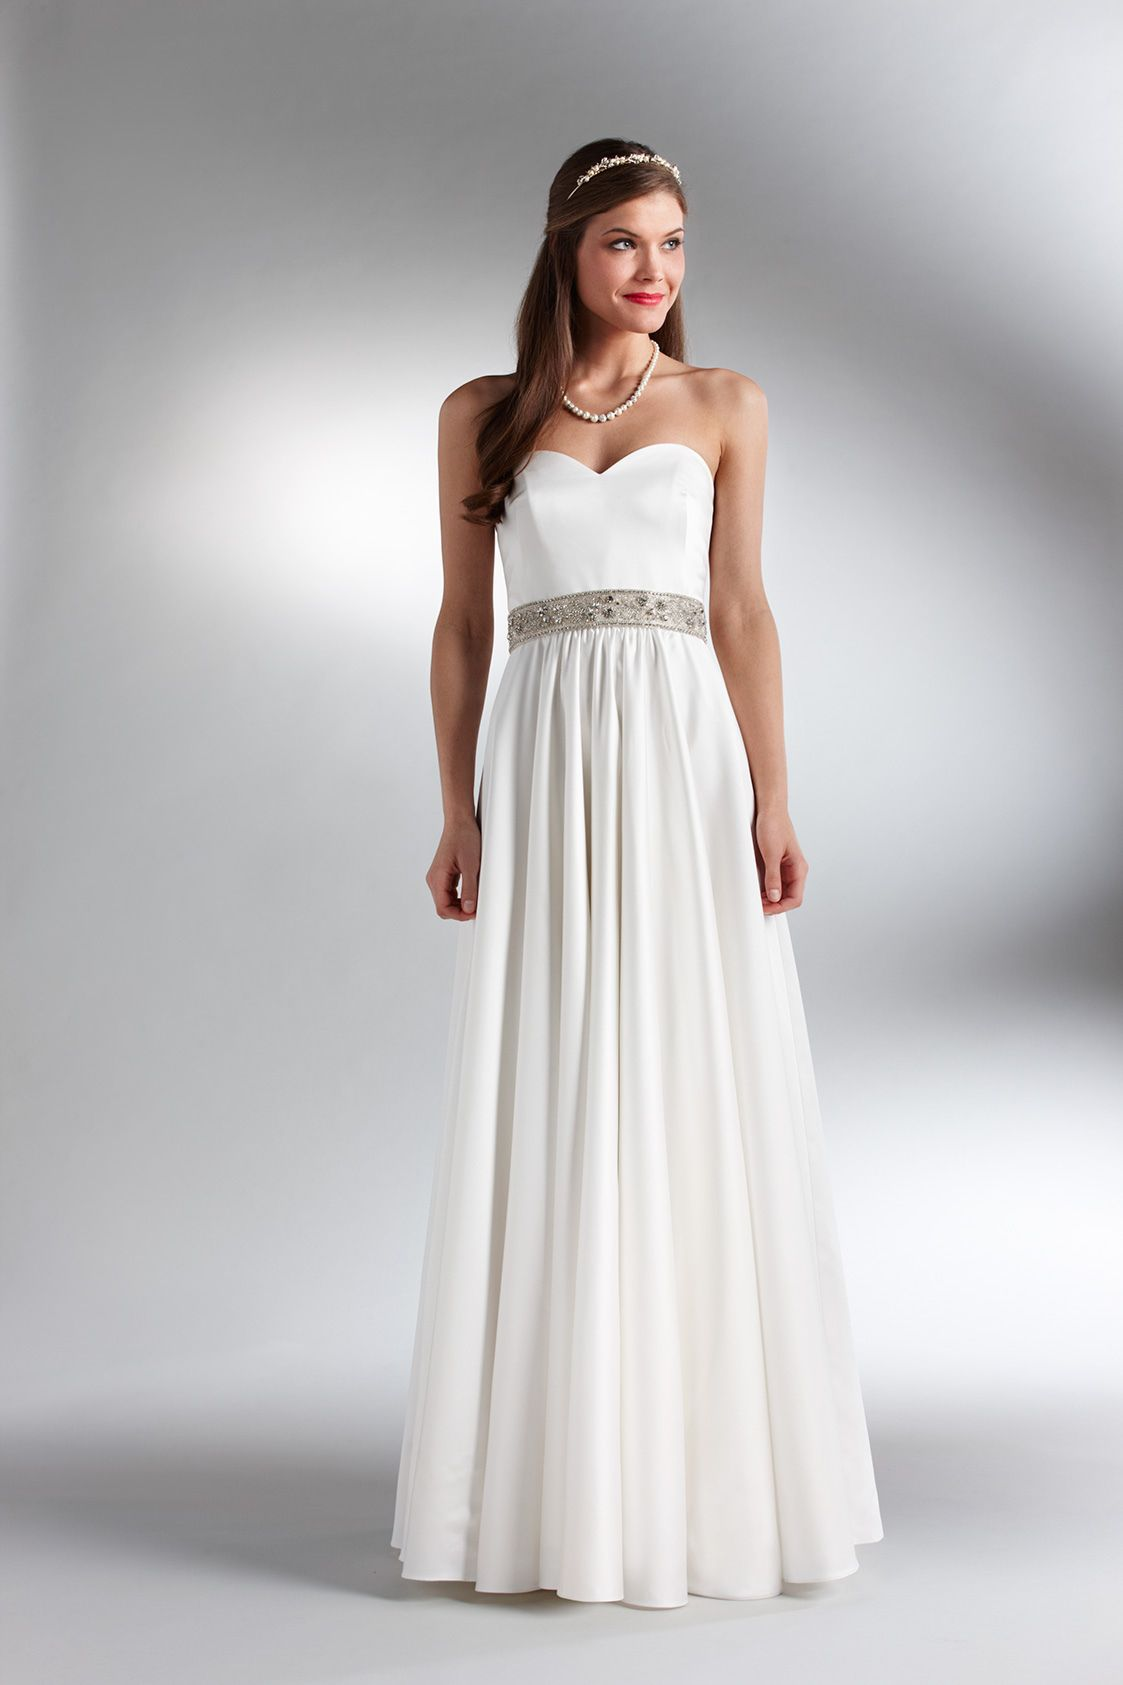 55+ Lord Of the Rings Wedding Dress - Women\'s Dresses for Weddings ...